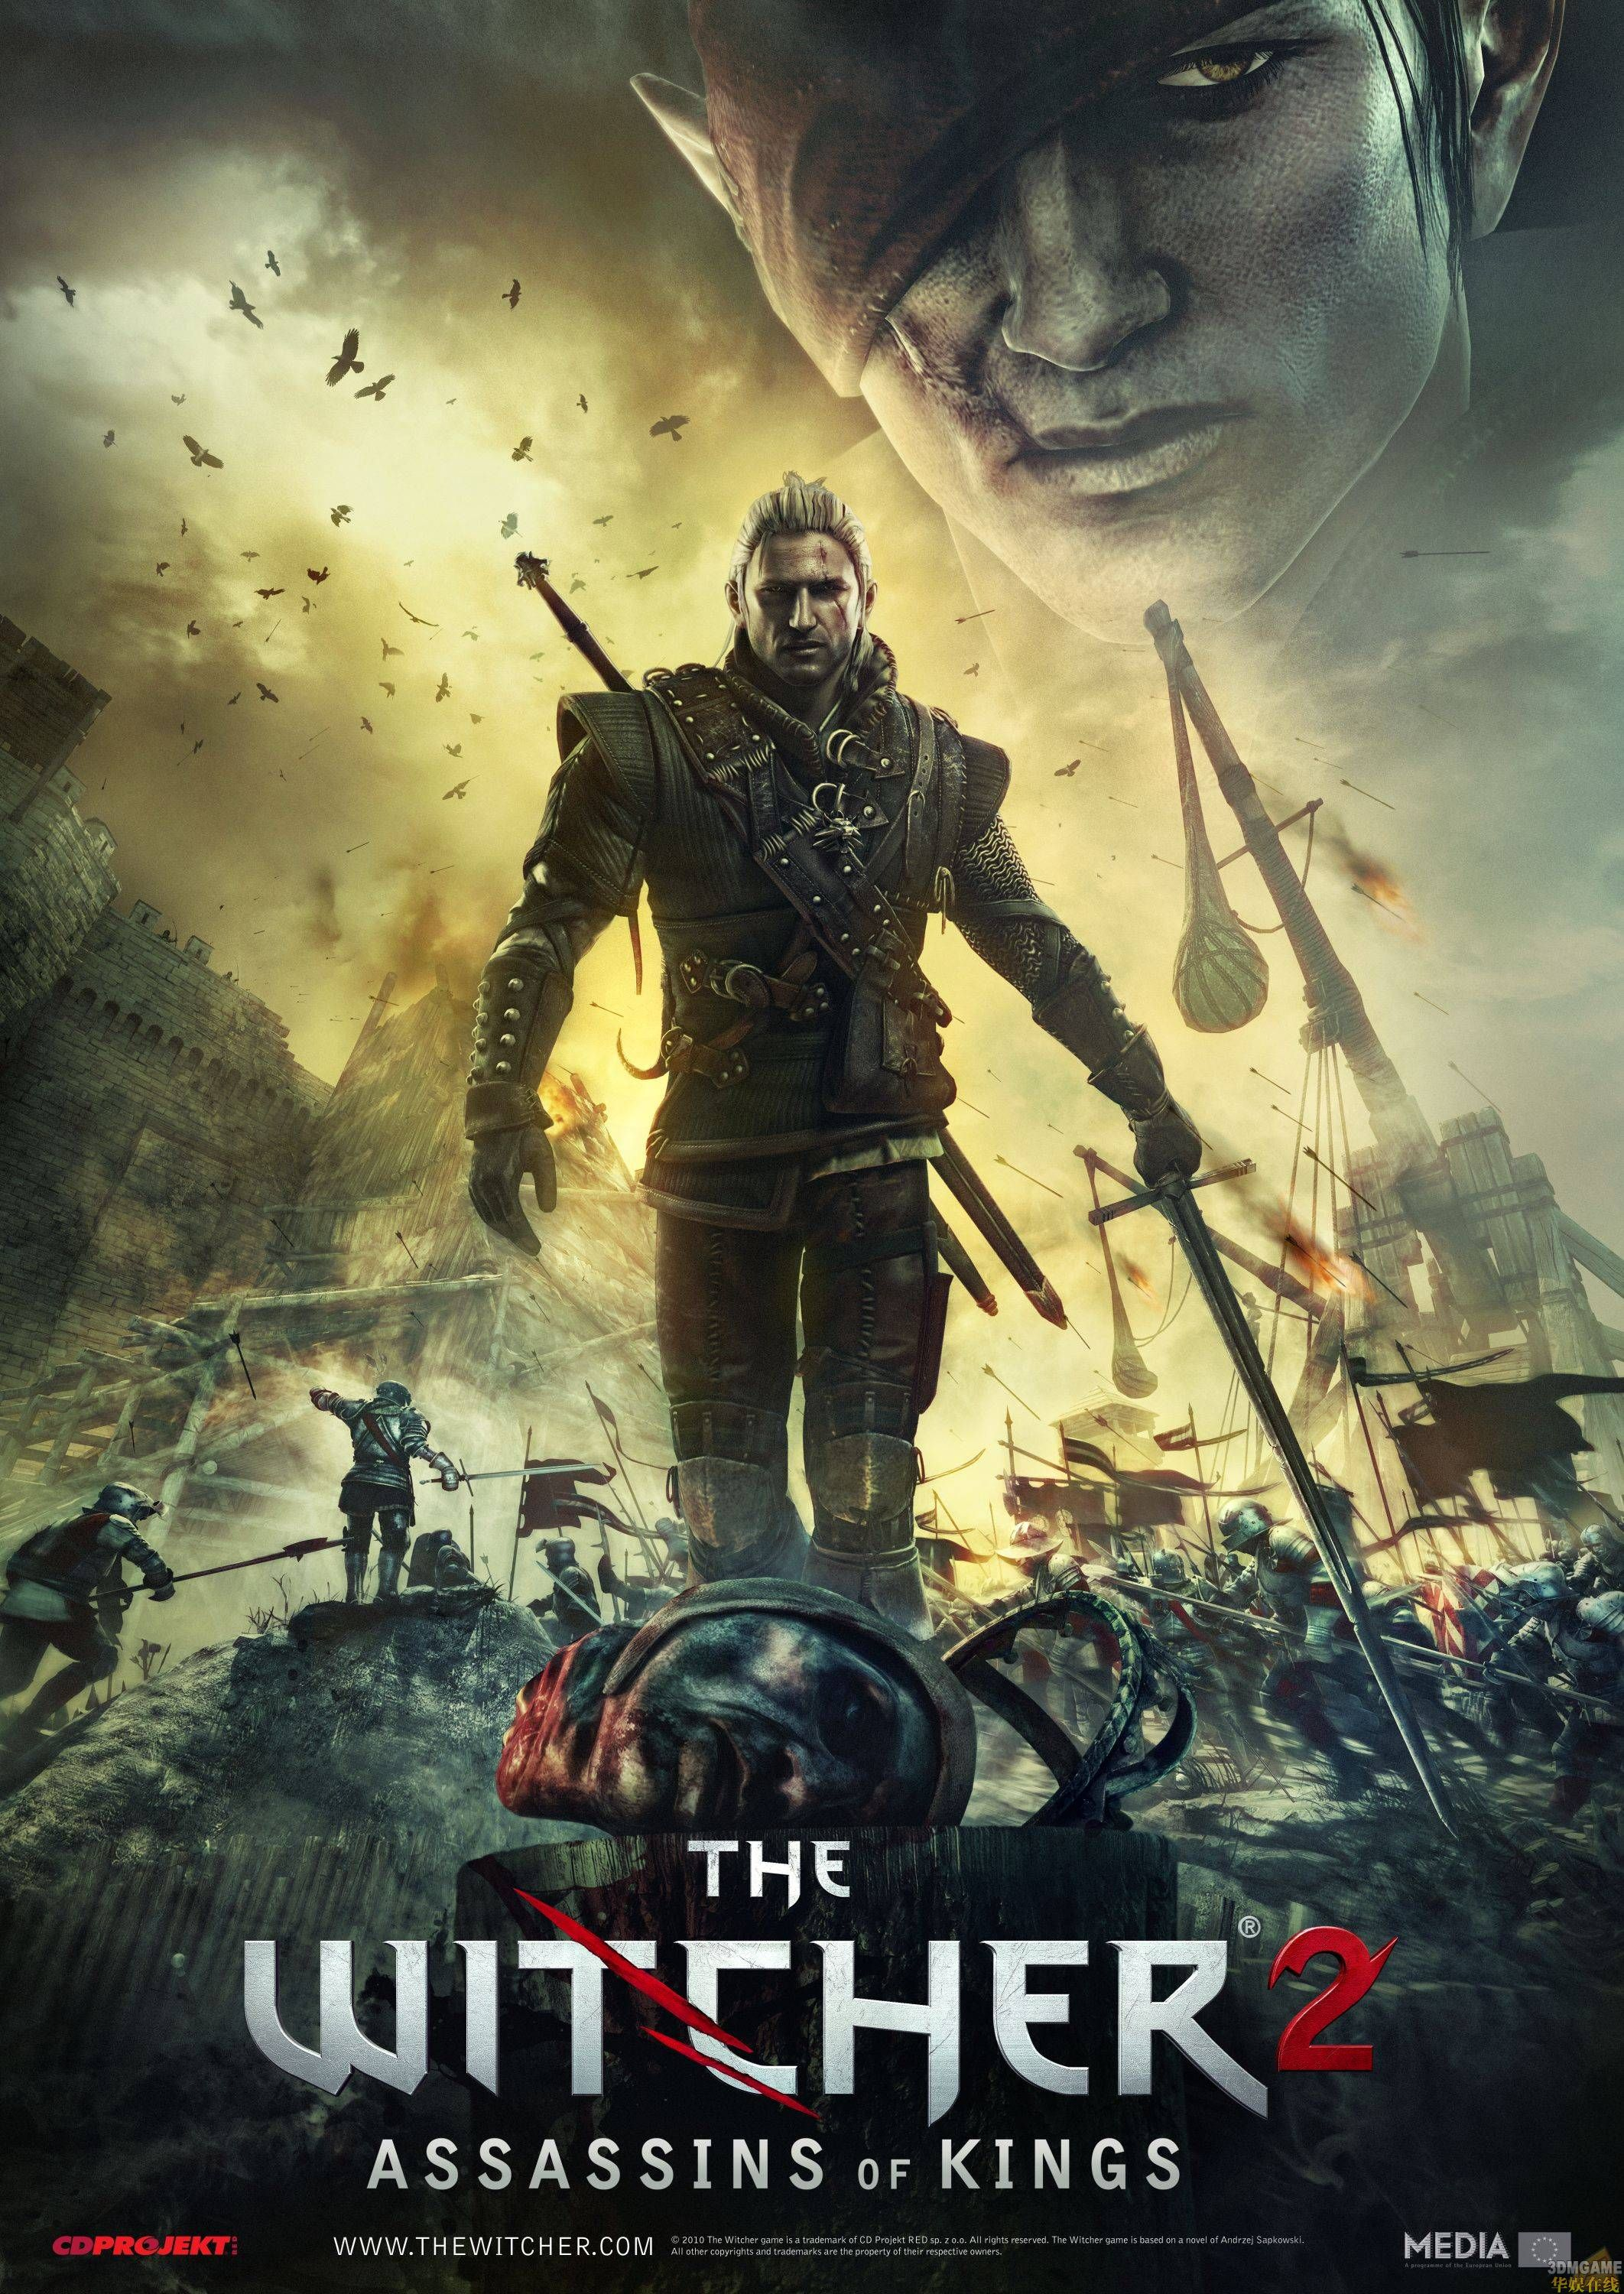 The Witcher 2 Assassins of Kings Русская версия Цифровой Premium Ключ